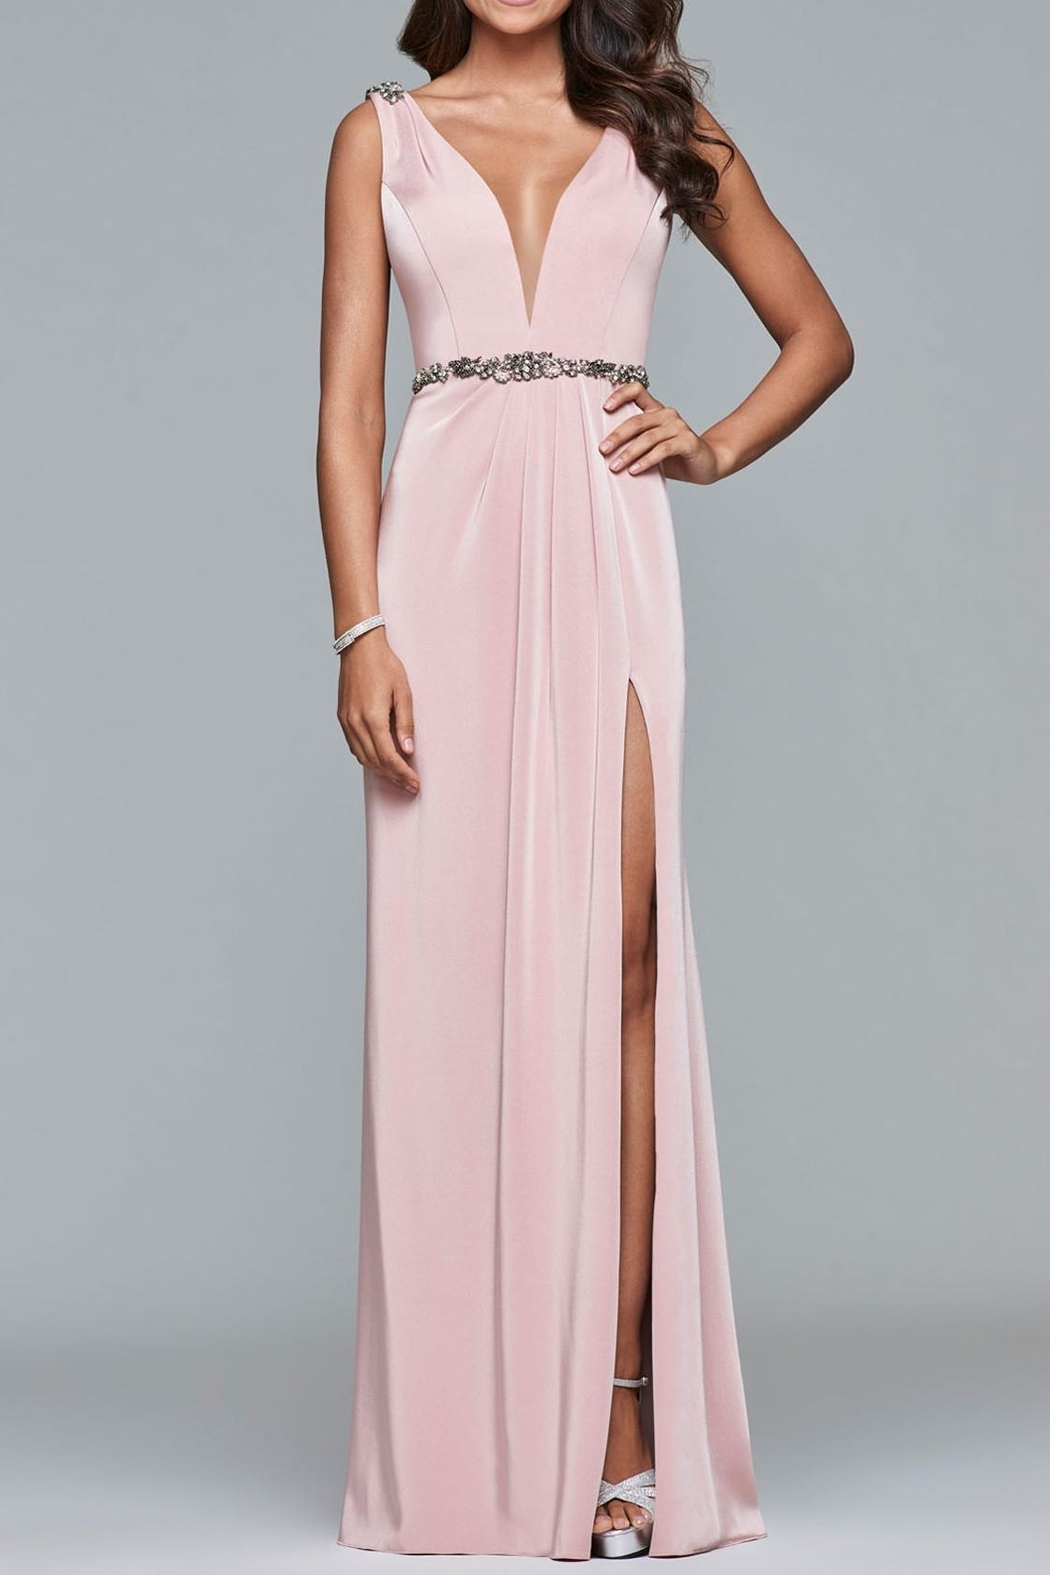 Faviana Waistline Accented Gown - Main Image